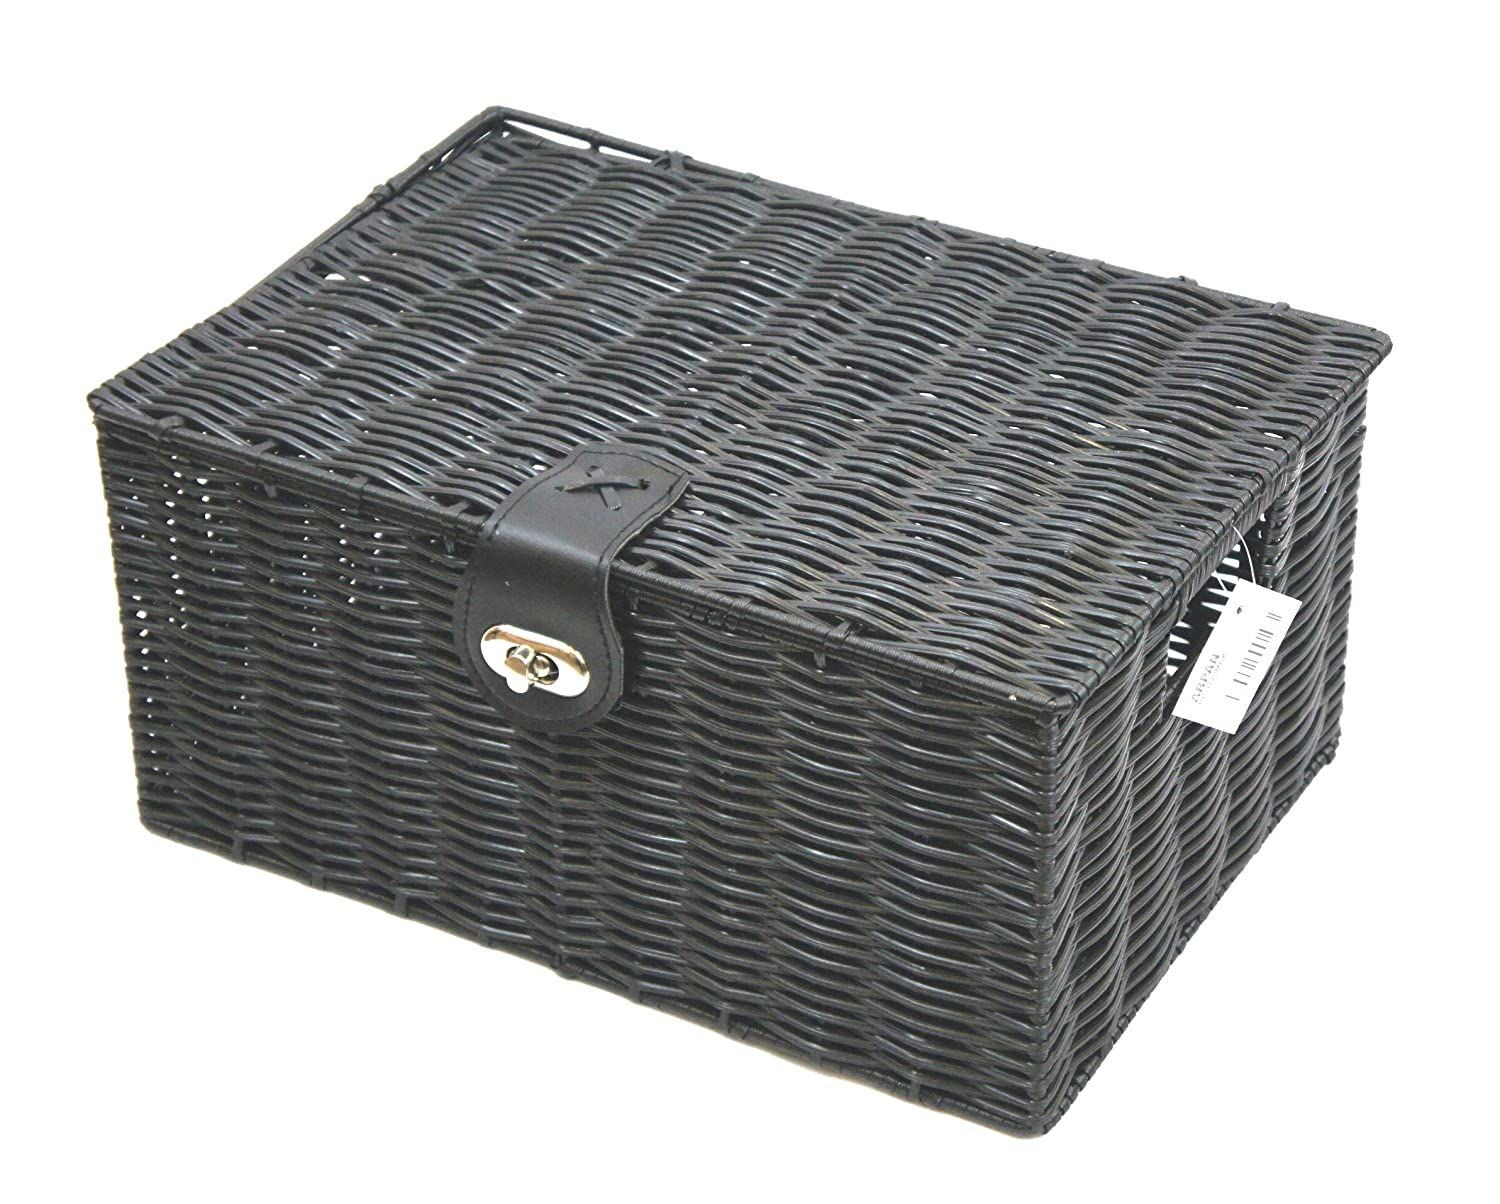 Arpan Medium Resin Woven Storage Basket Box With Lid & Lock - Black